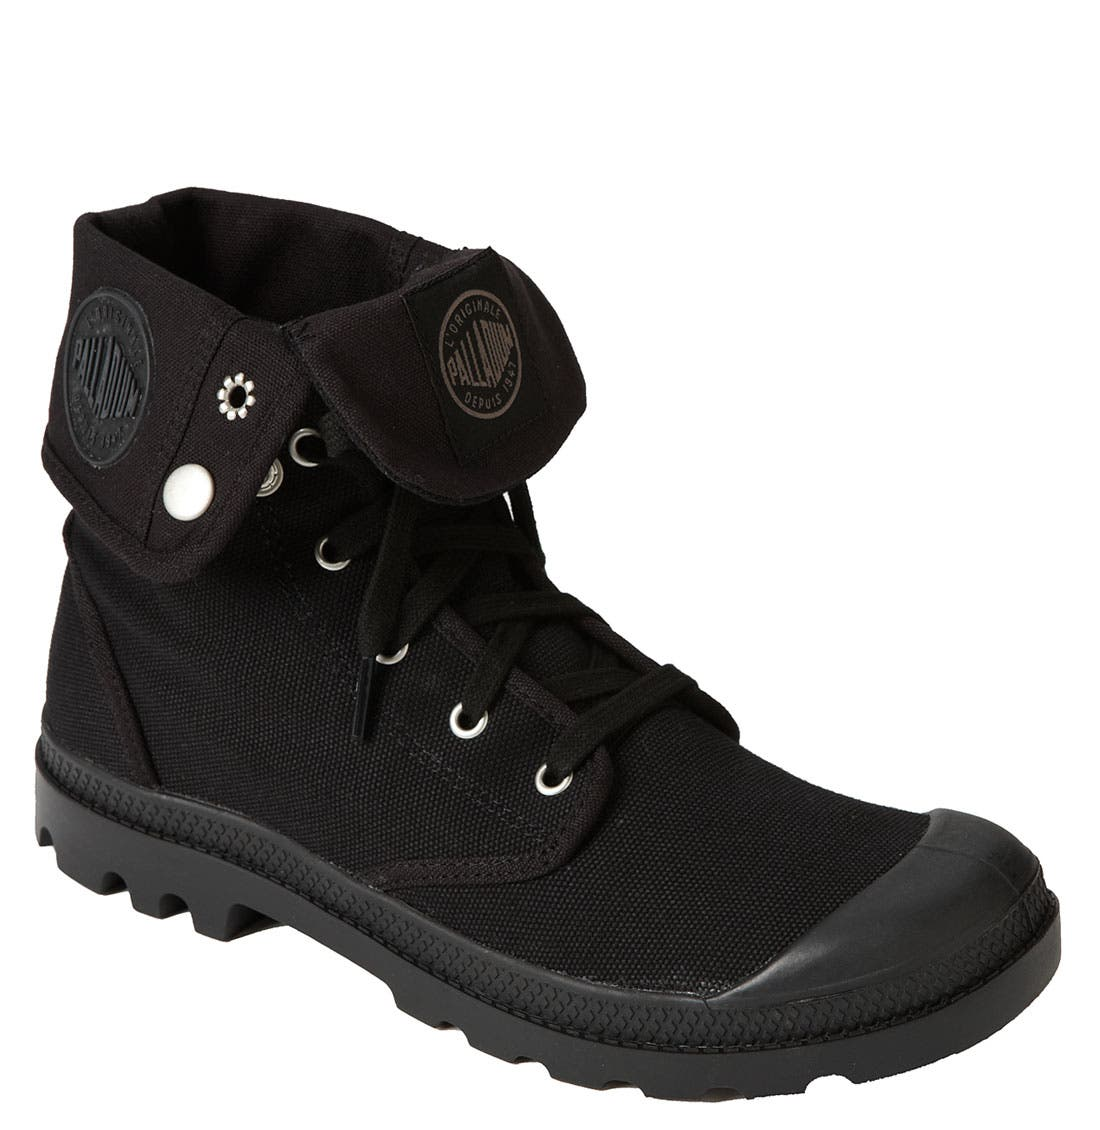 Alternate Image 1 Selected - Palladium 'Baggy' Canvas Boot